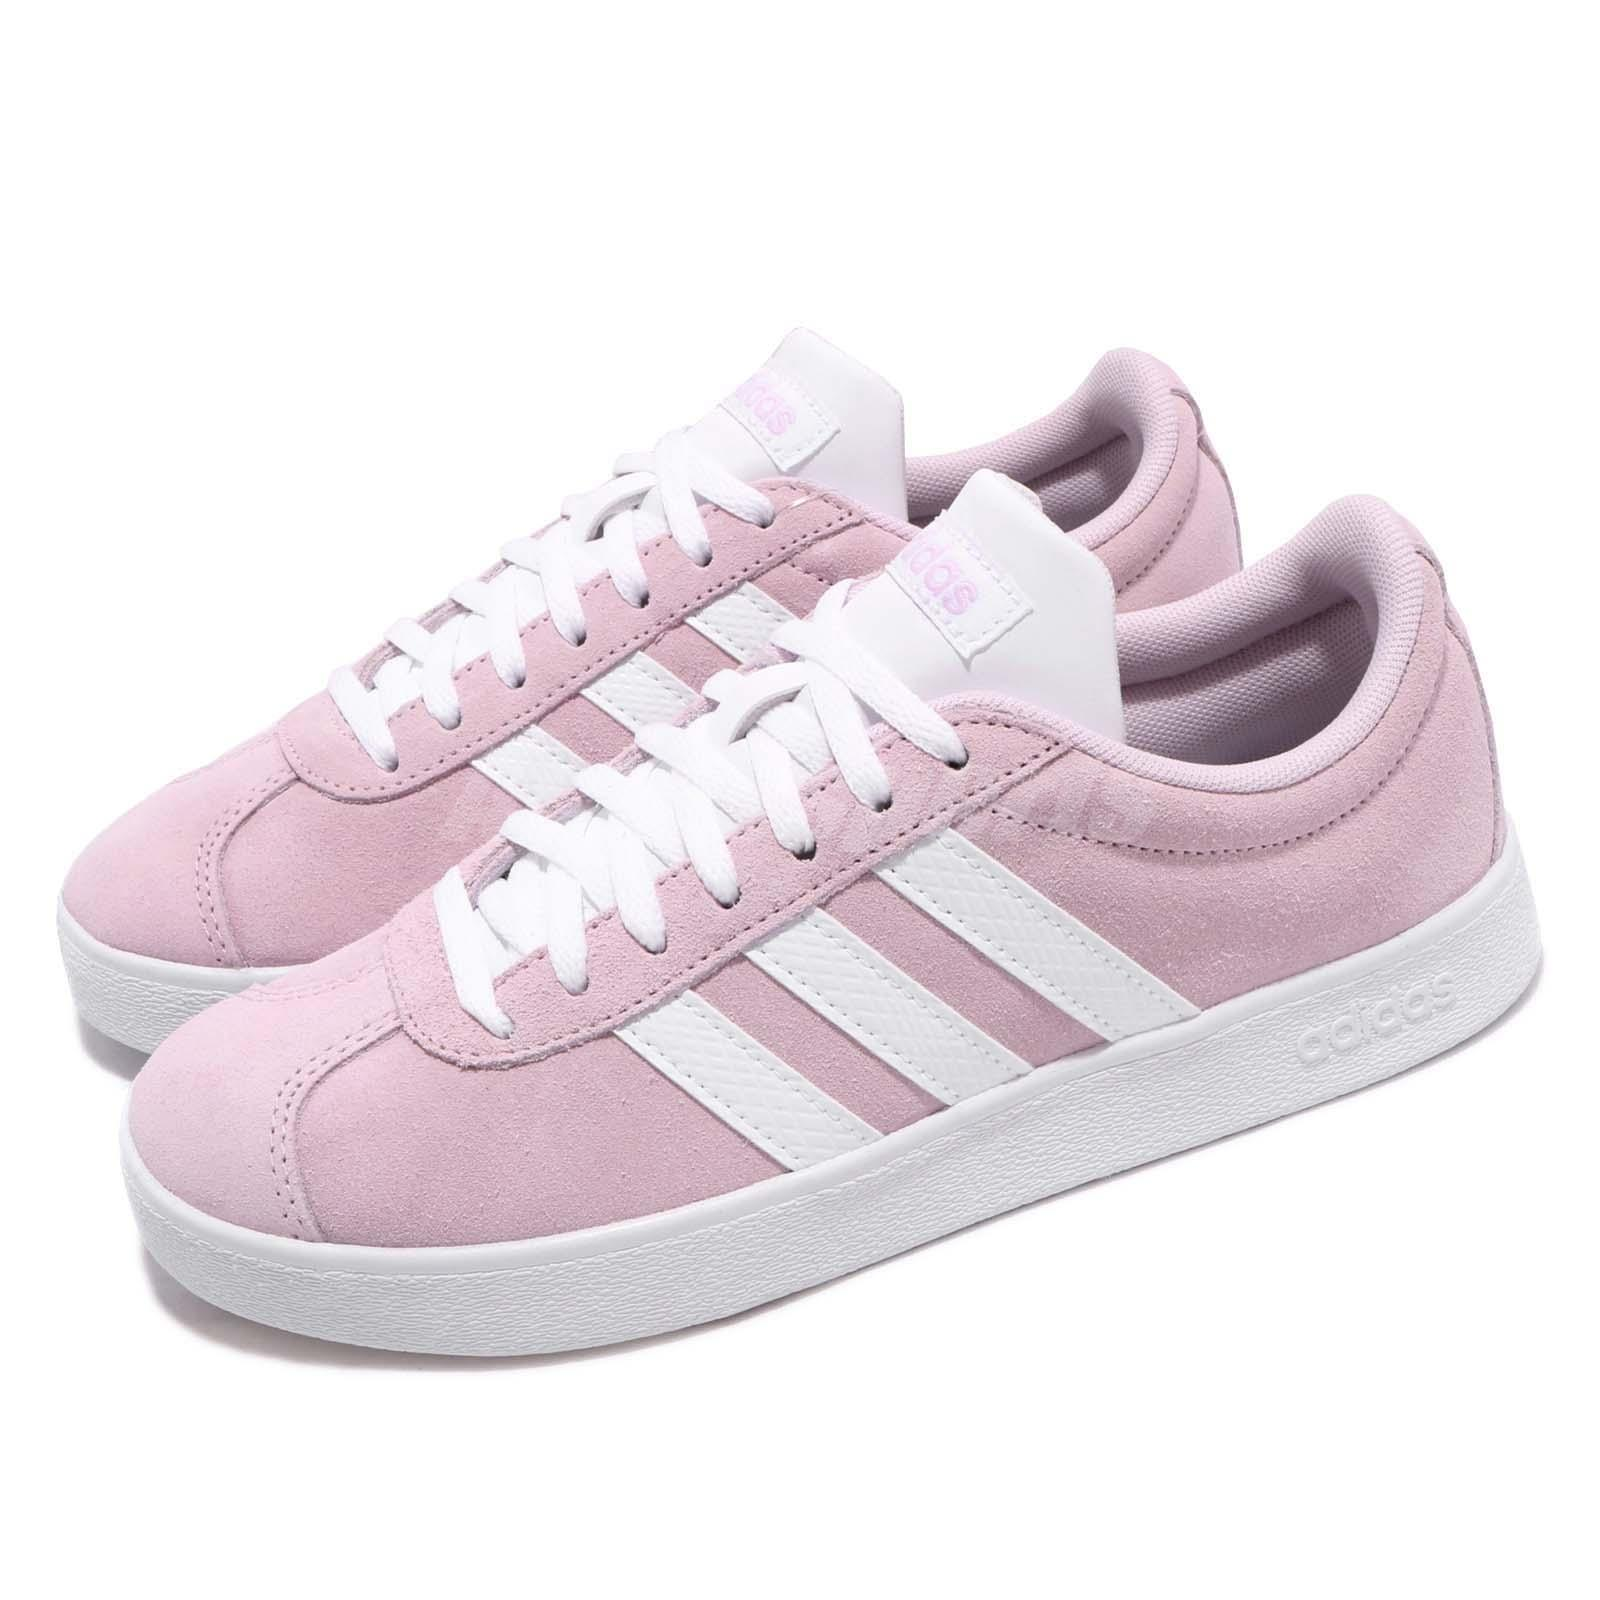 Details about adidas VL Court 2.0 Aero Pink White Women Classic Casual Shoes Sneakers F35128